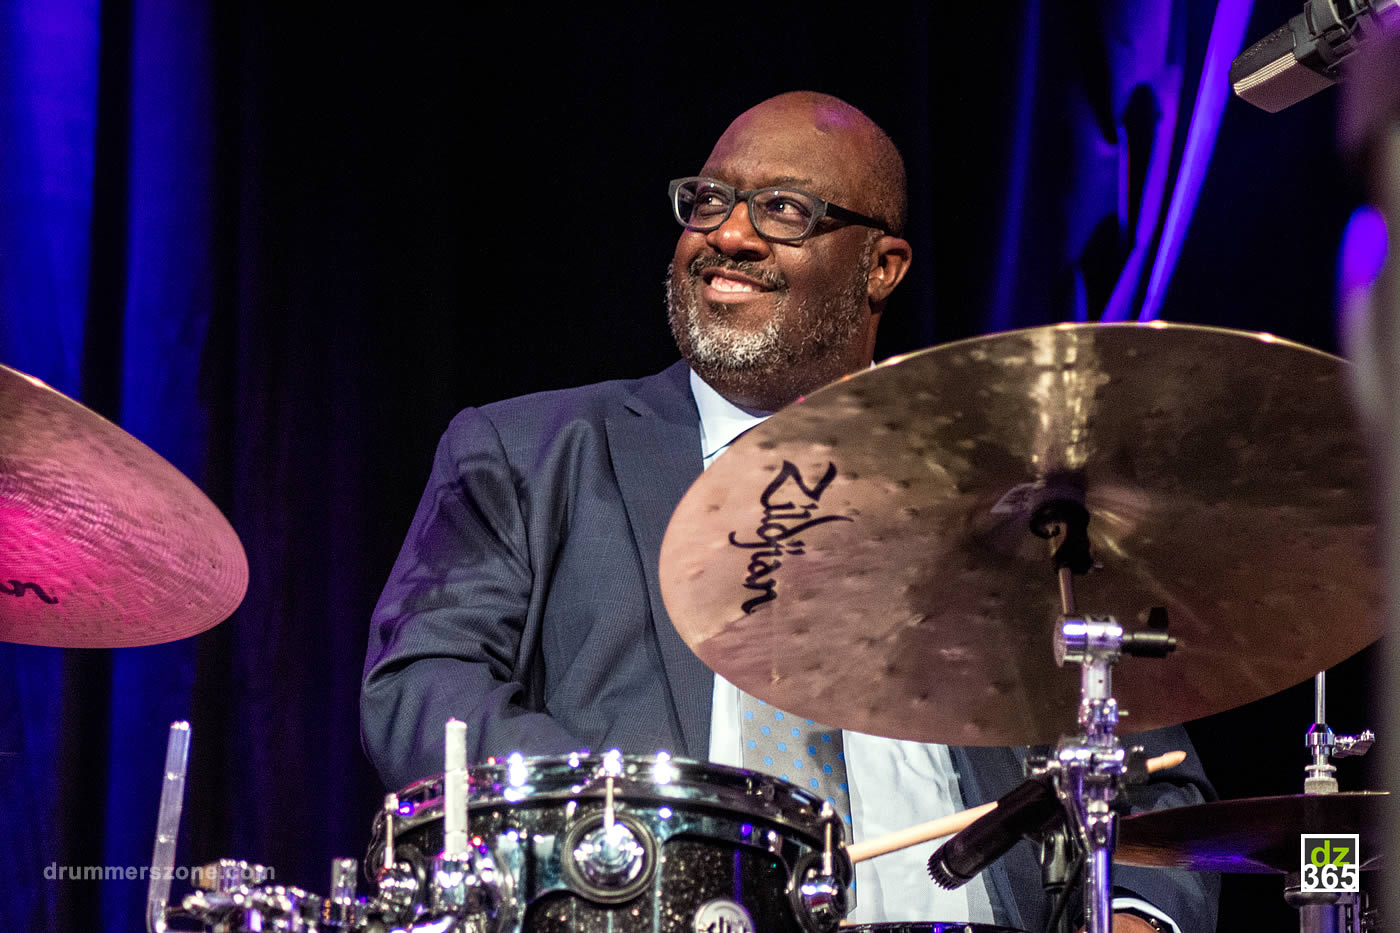 jazz-icon-carl-allen-joins-vater-percussion-13550-0-20170725214228.jpg